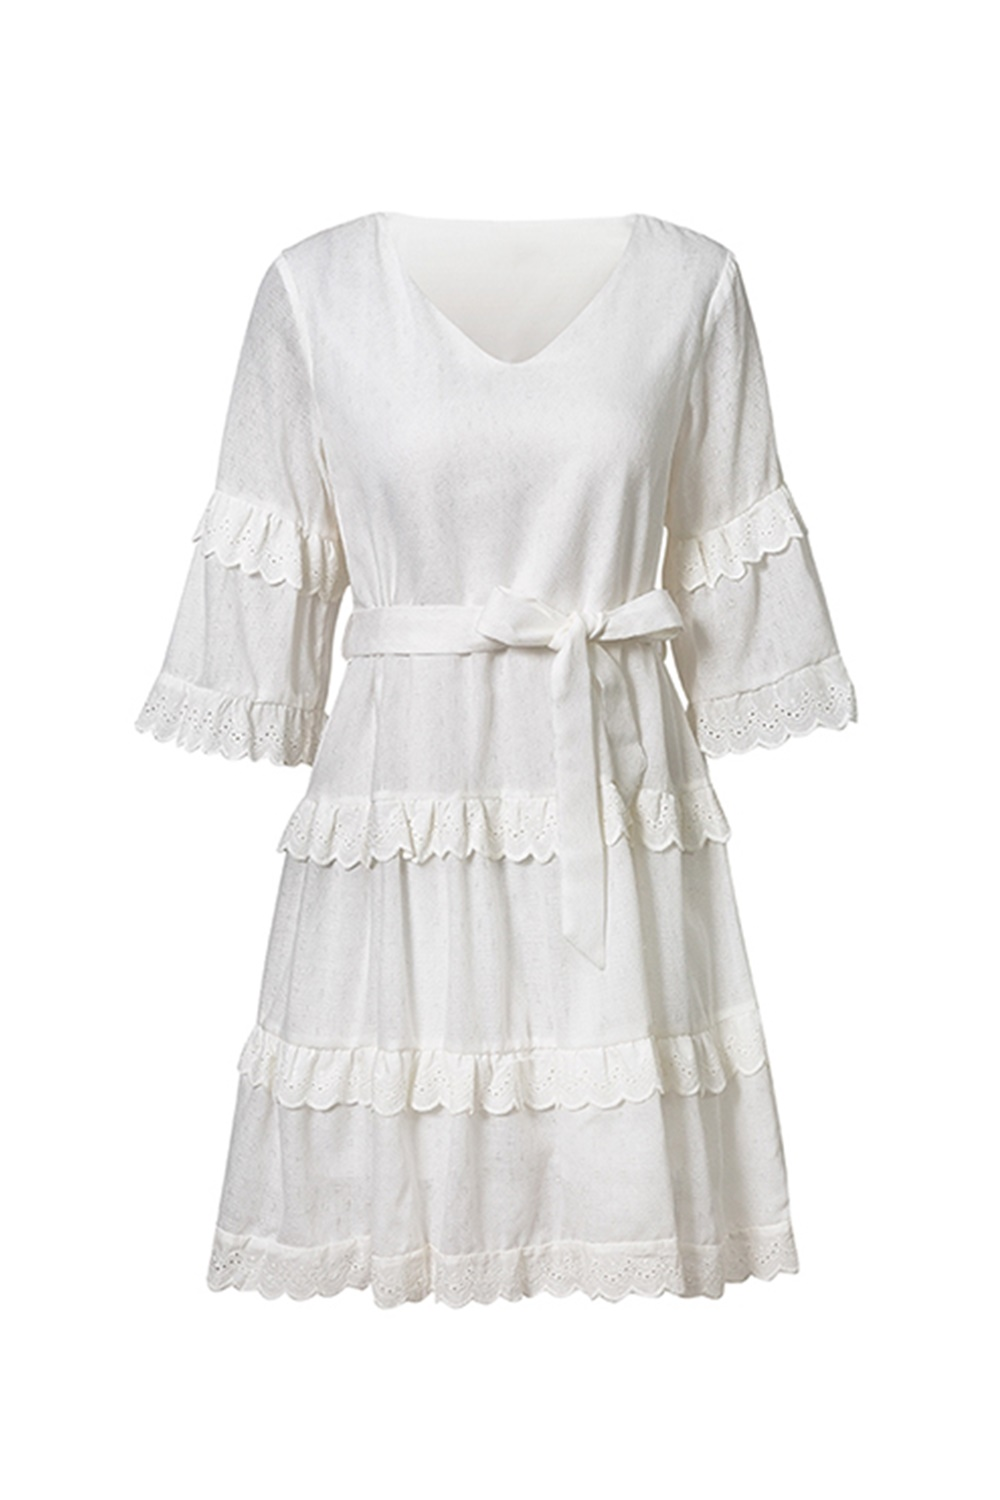 White dress -  Shallow